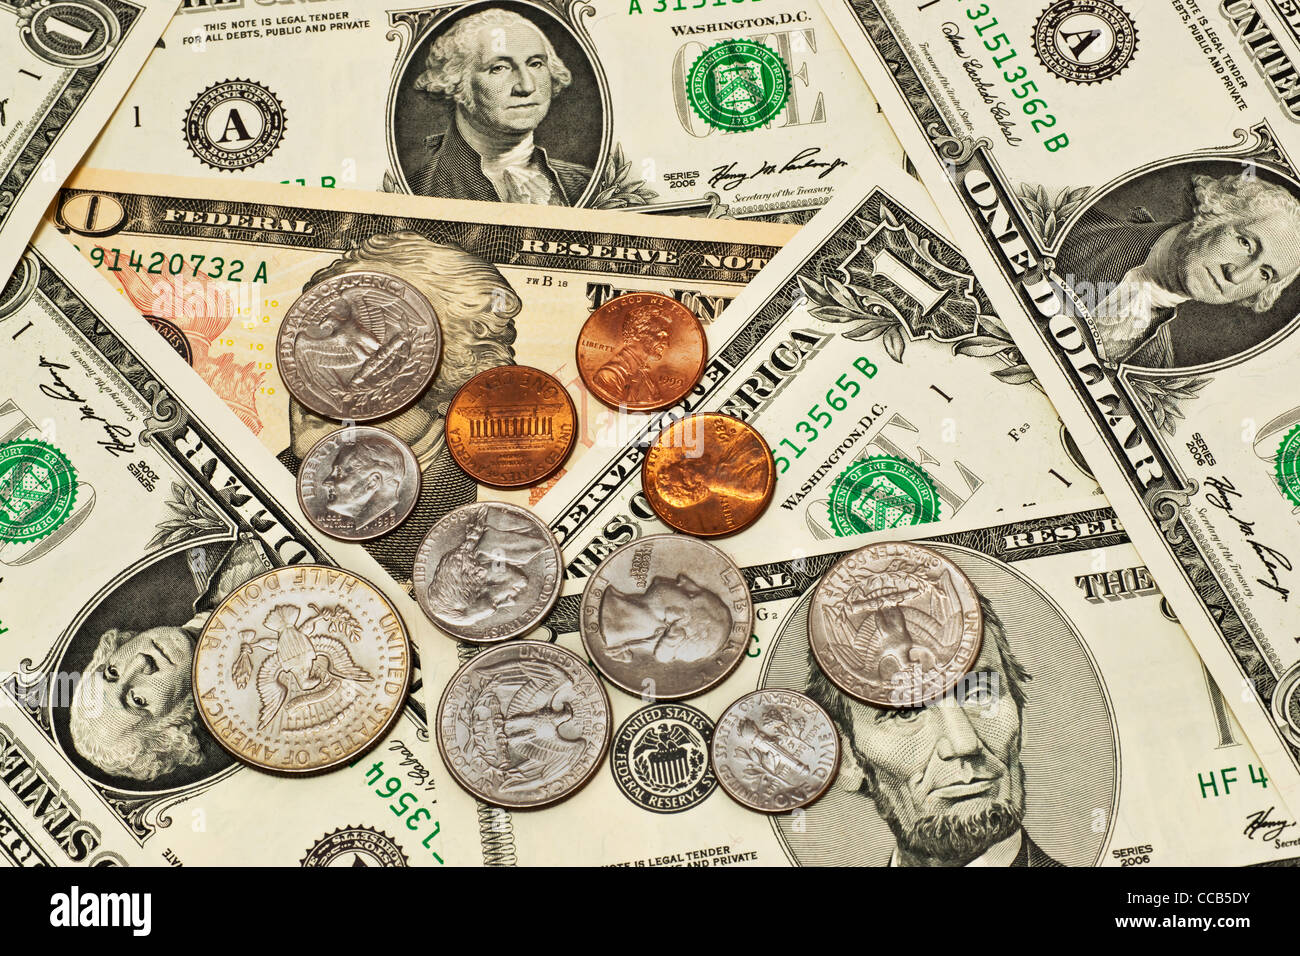 Detail photo of various U.S. American dollar bills, some coins are alongside - Stock Image